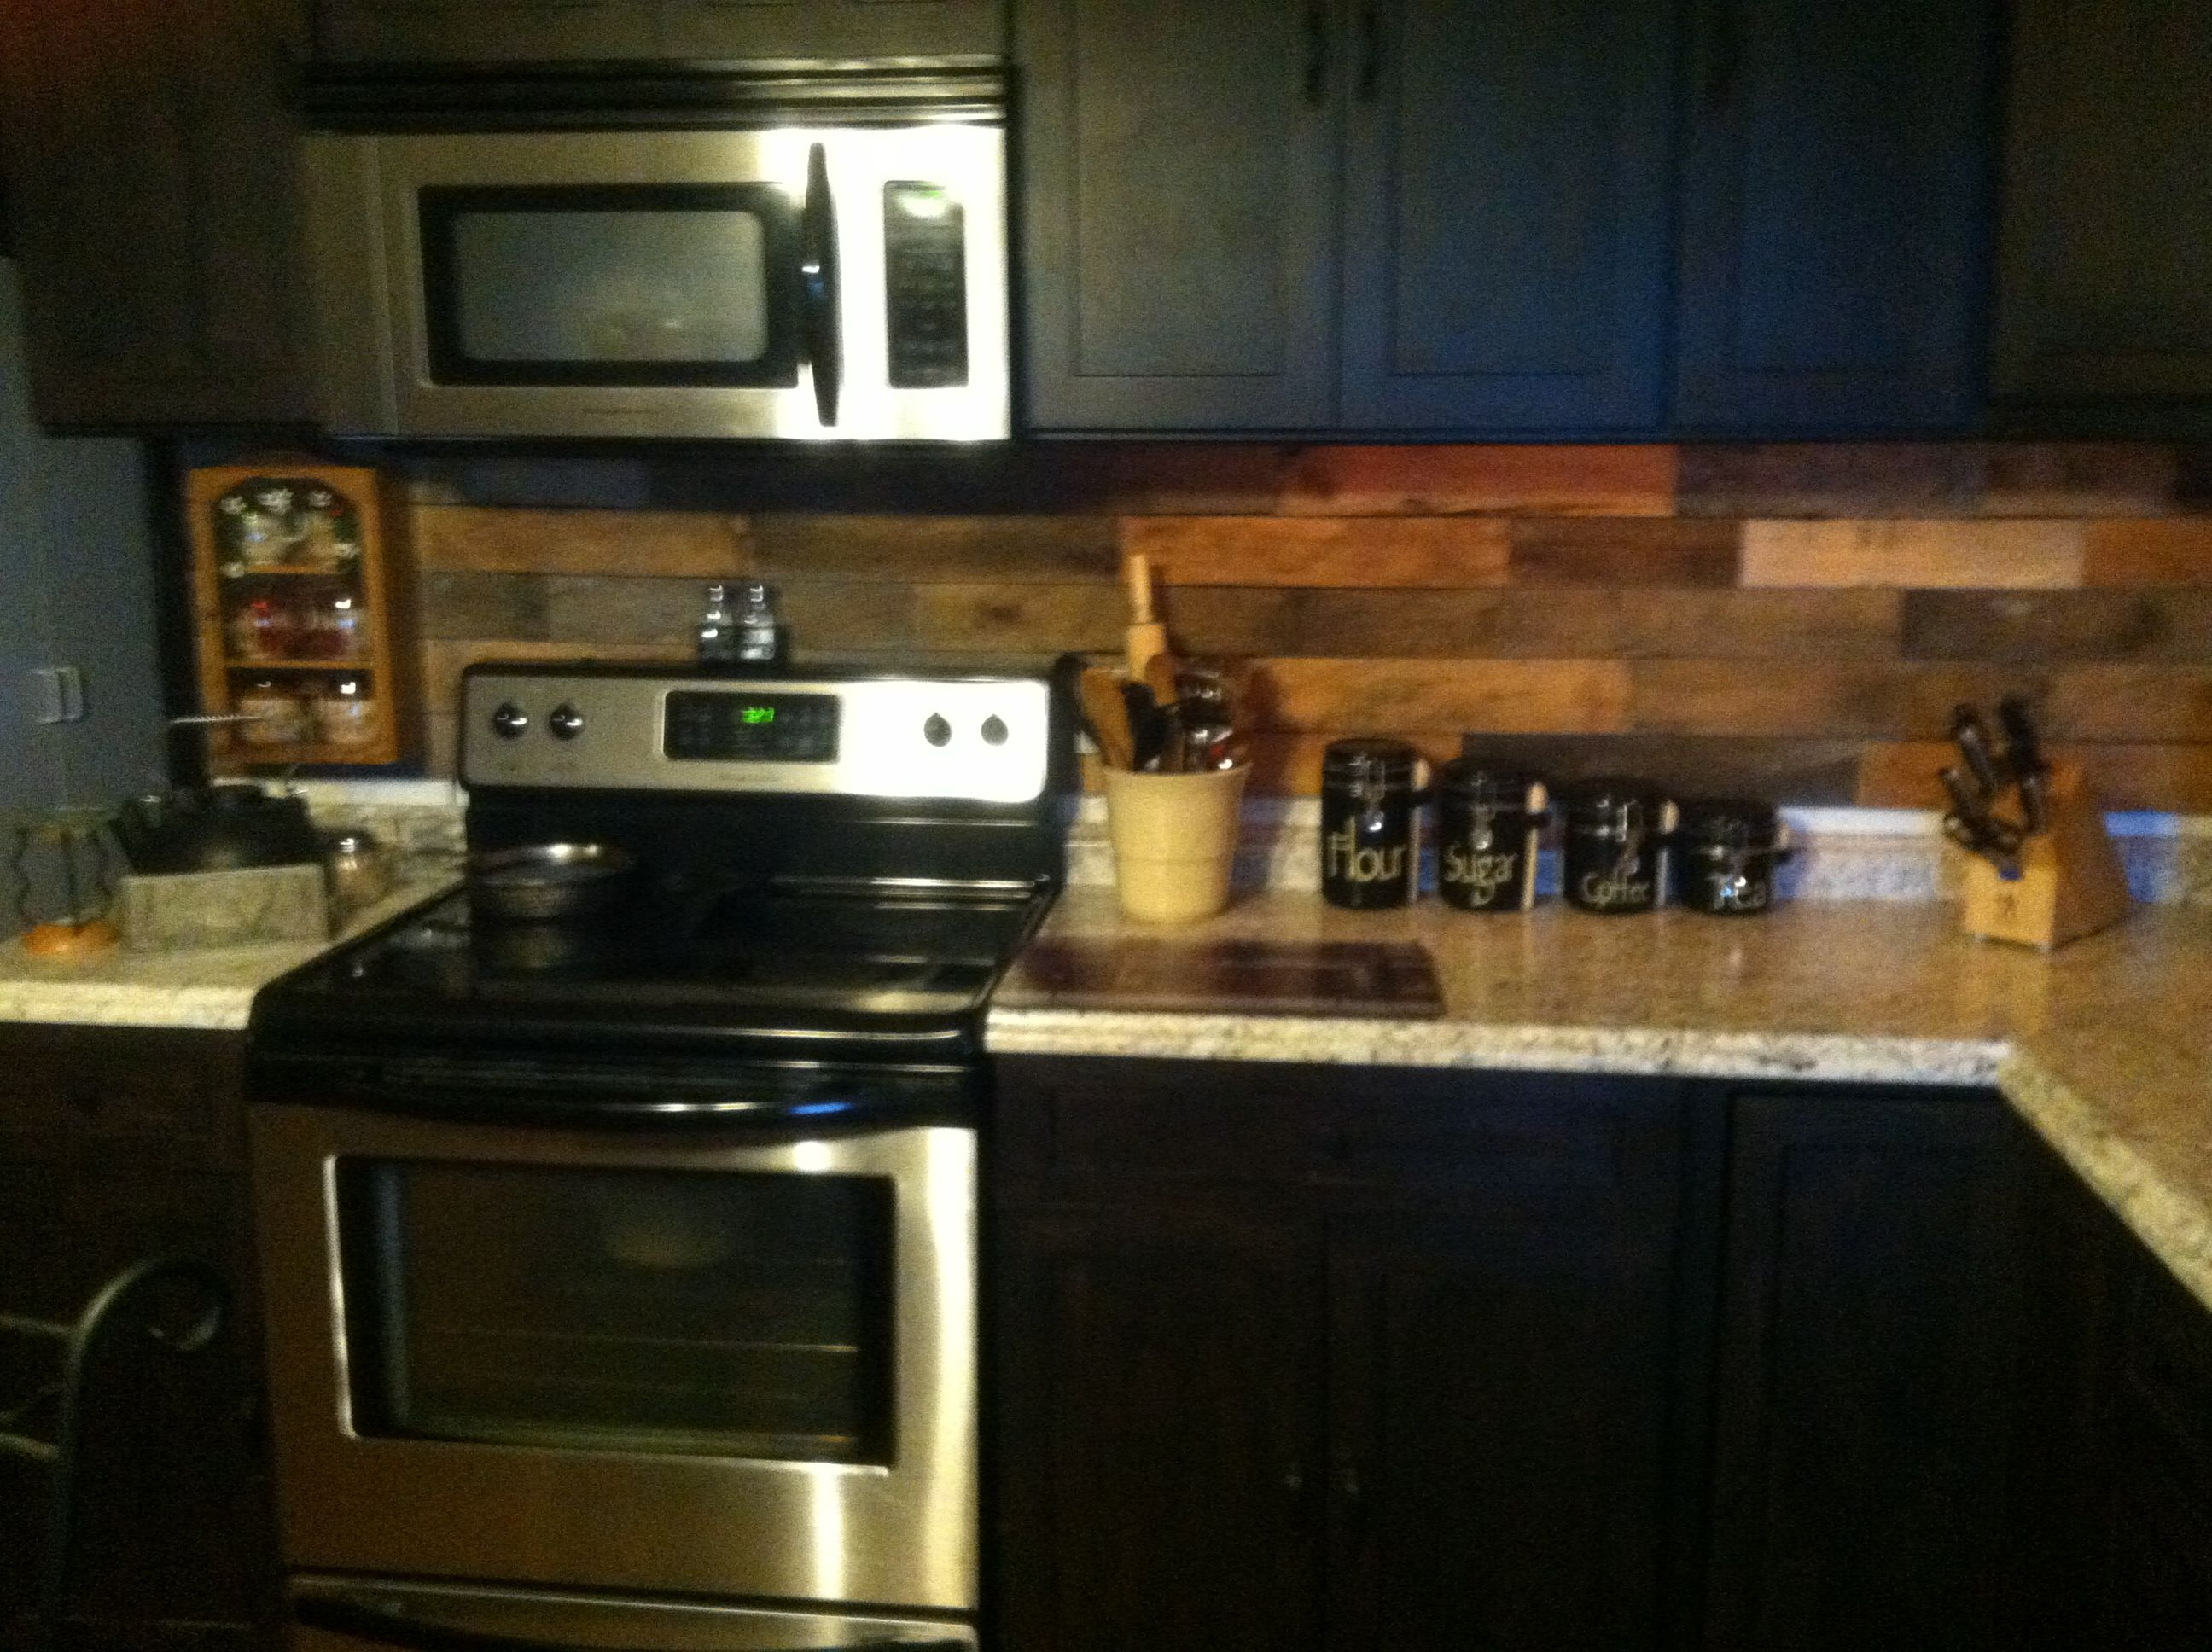 Diy Rustic Backsplash Pallet Backsplash In Our Old Farm House Kitchen